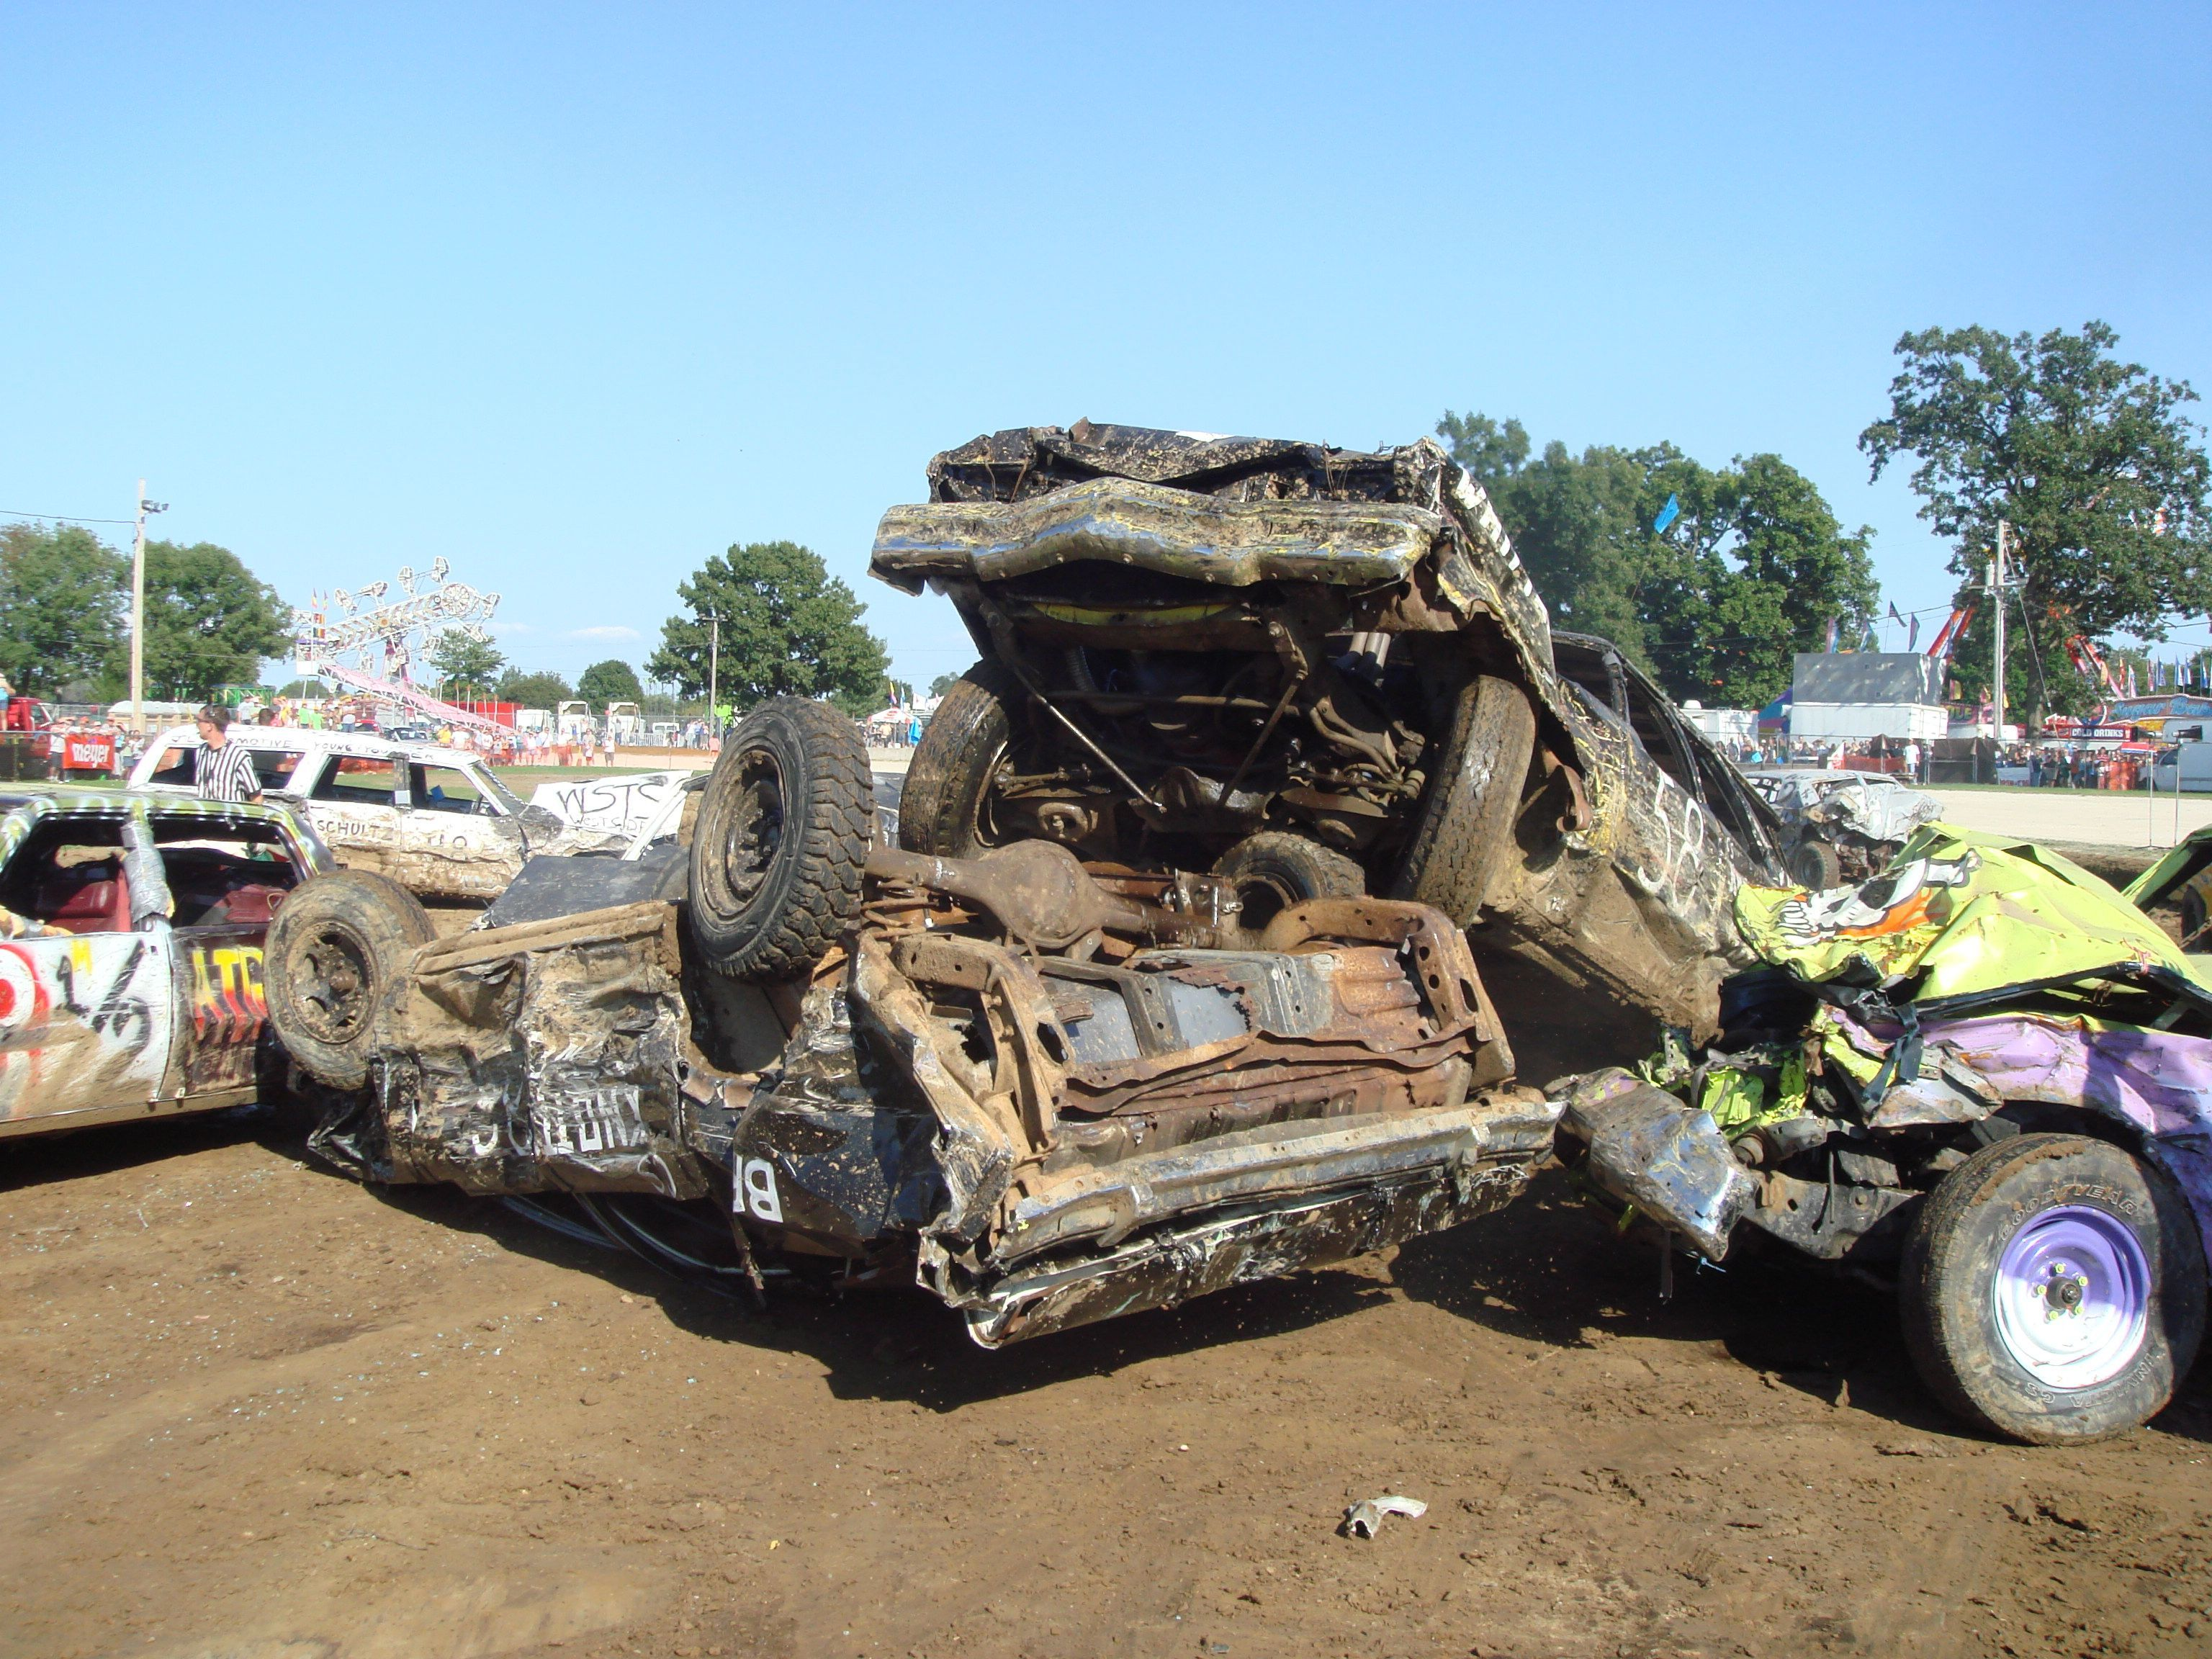 Smashing and Crashing cars May 12th, Demo Derby Richland Center, WI ...